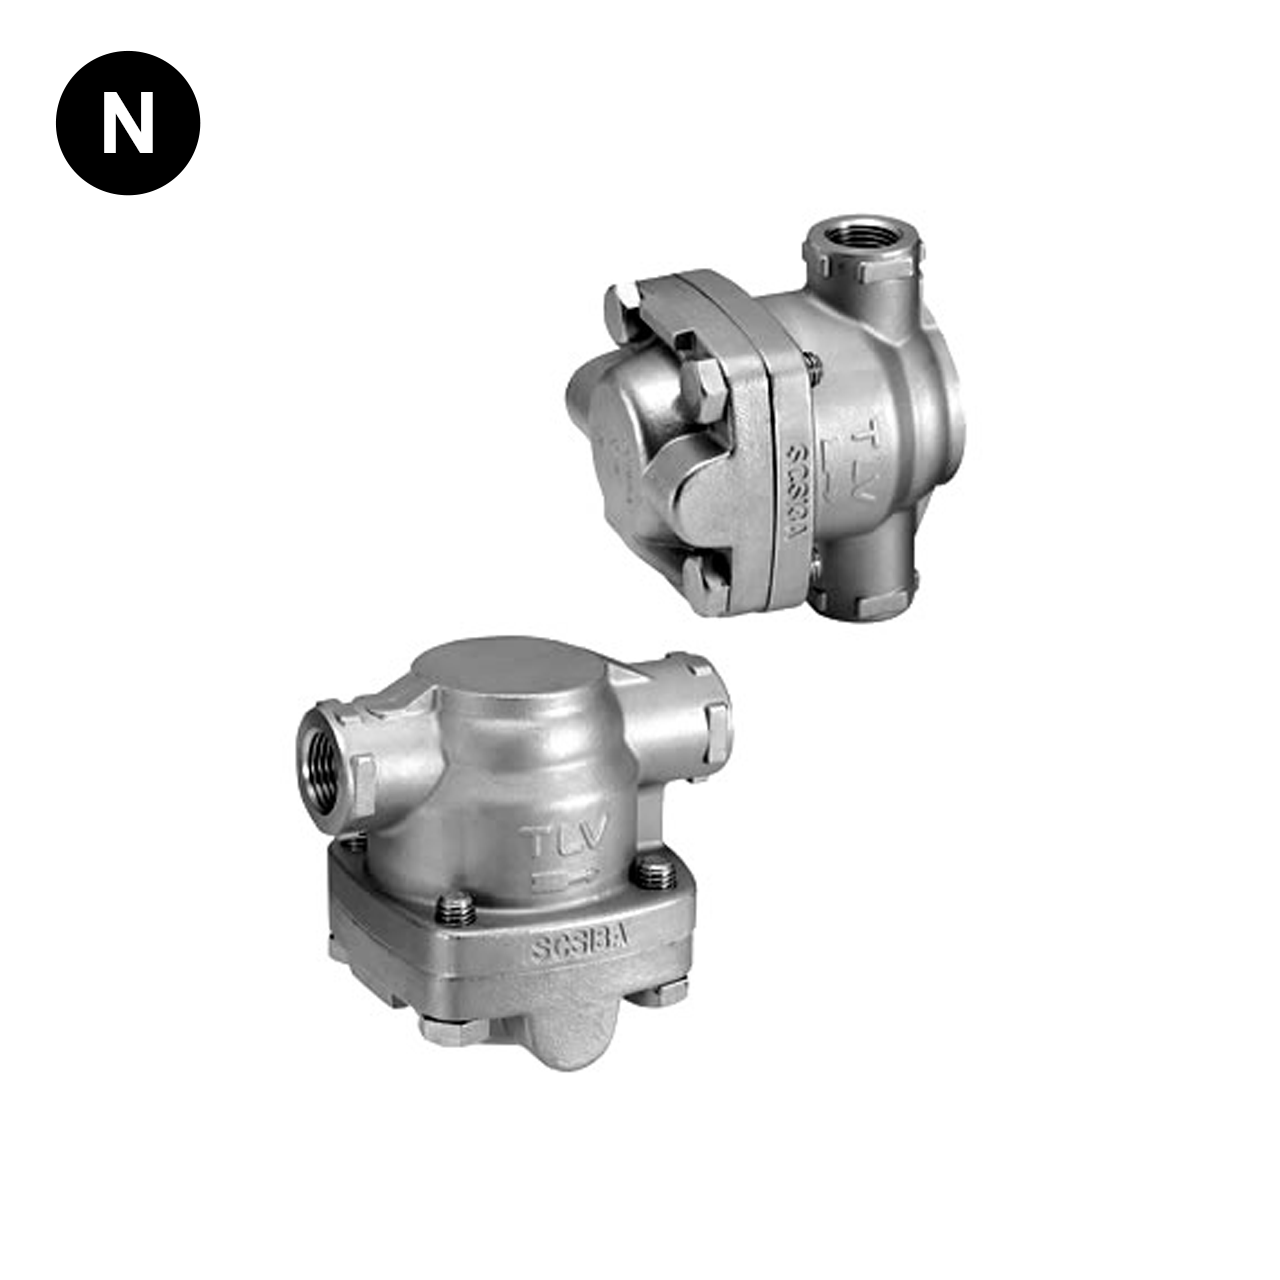 Tlv steam traps manufacturers suppliers   exporters india.